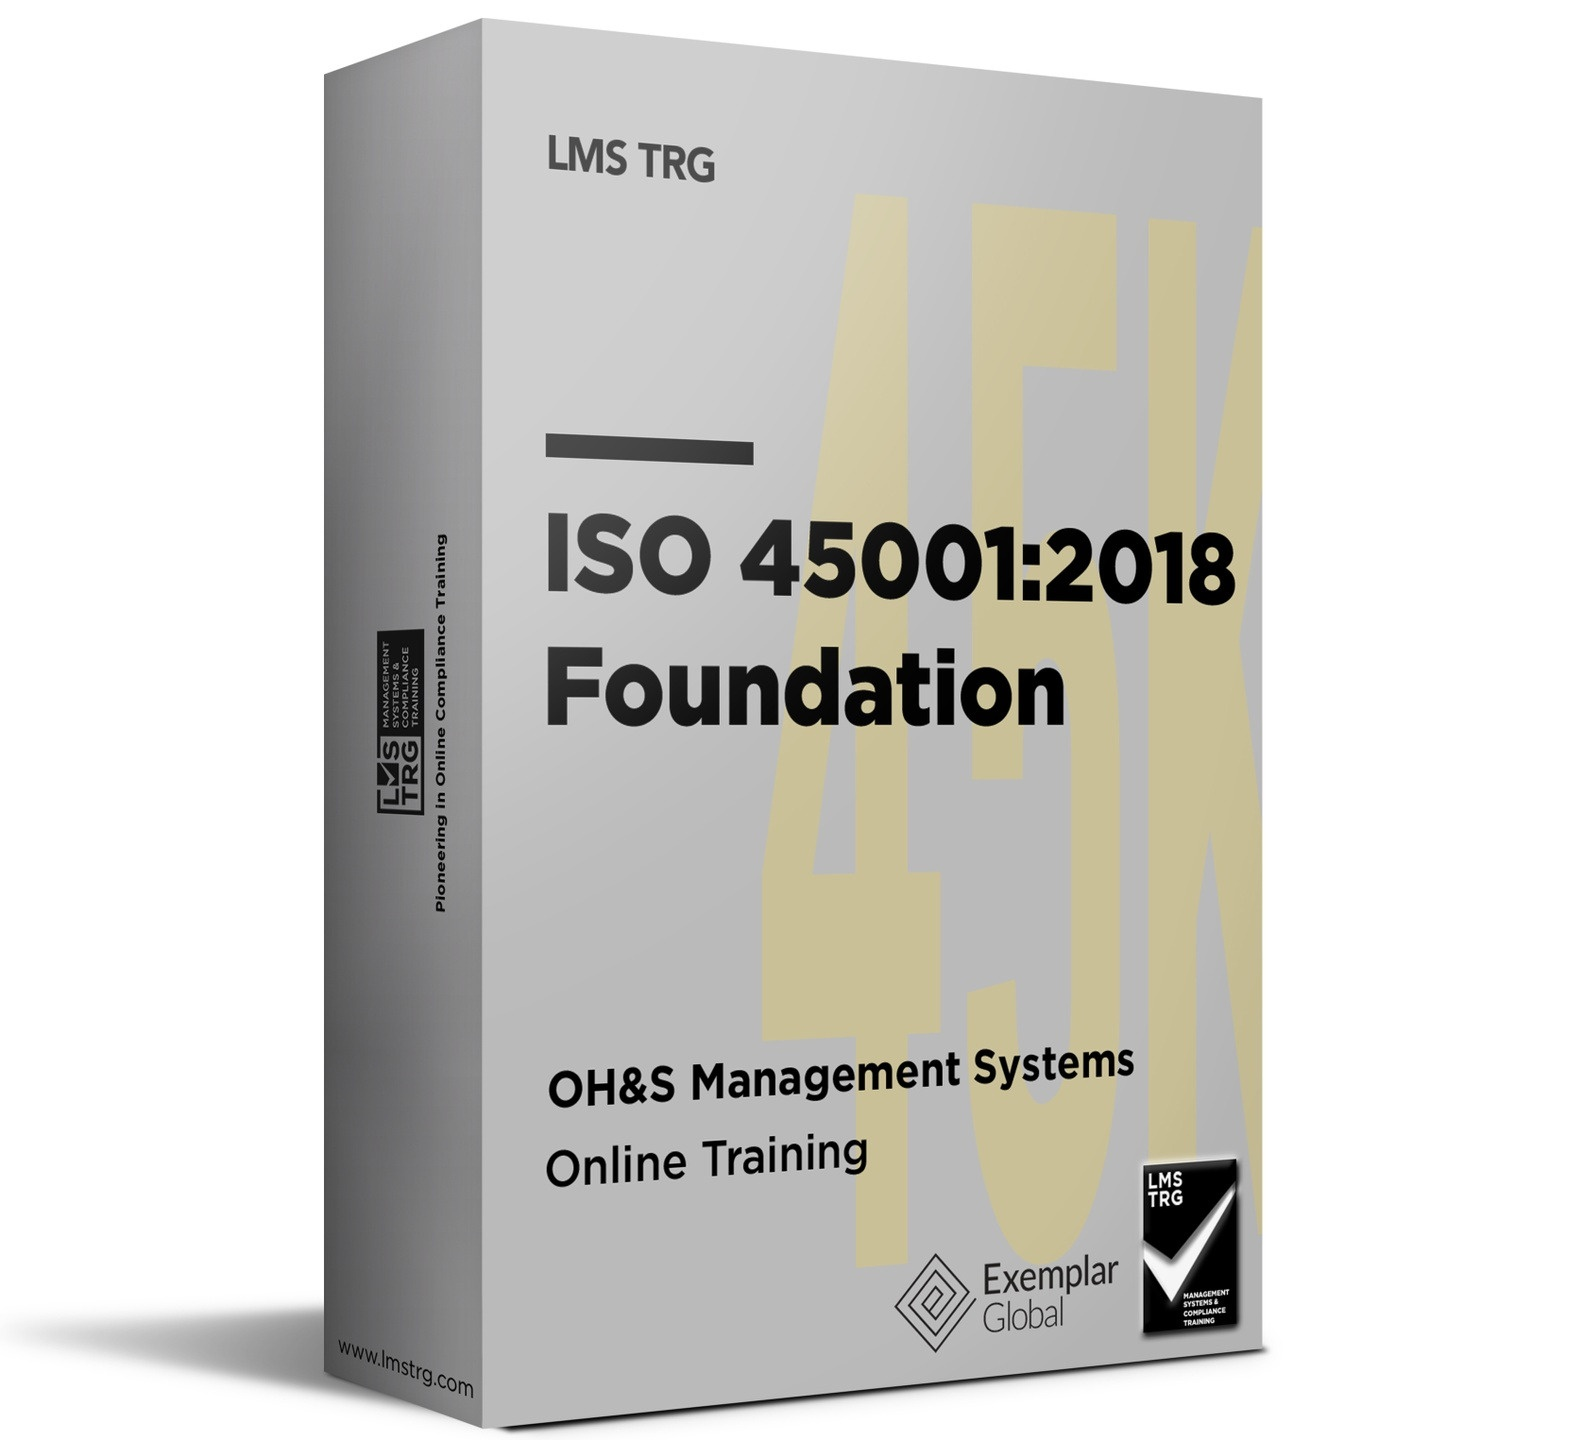 occupational health and safety management systems foundation iso 45001